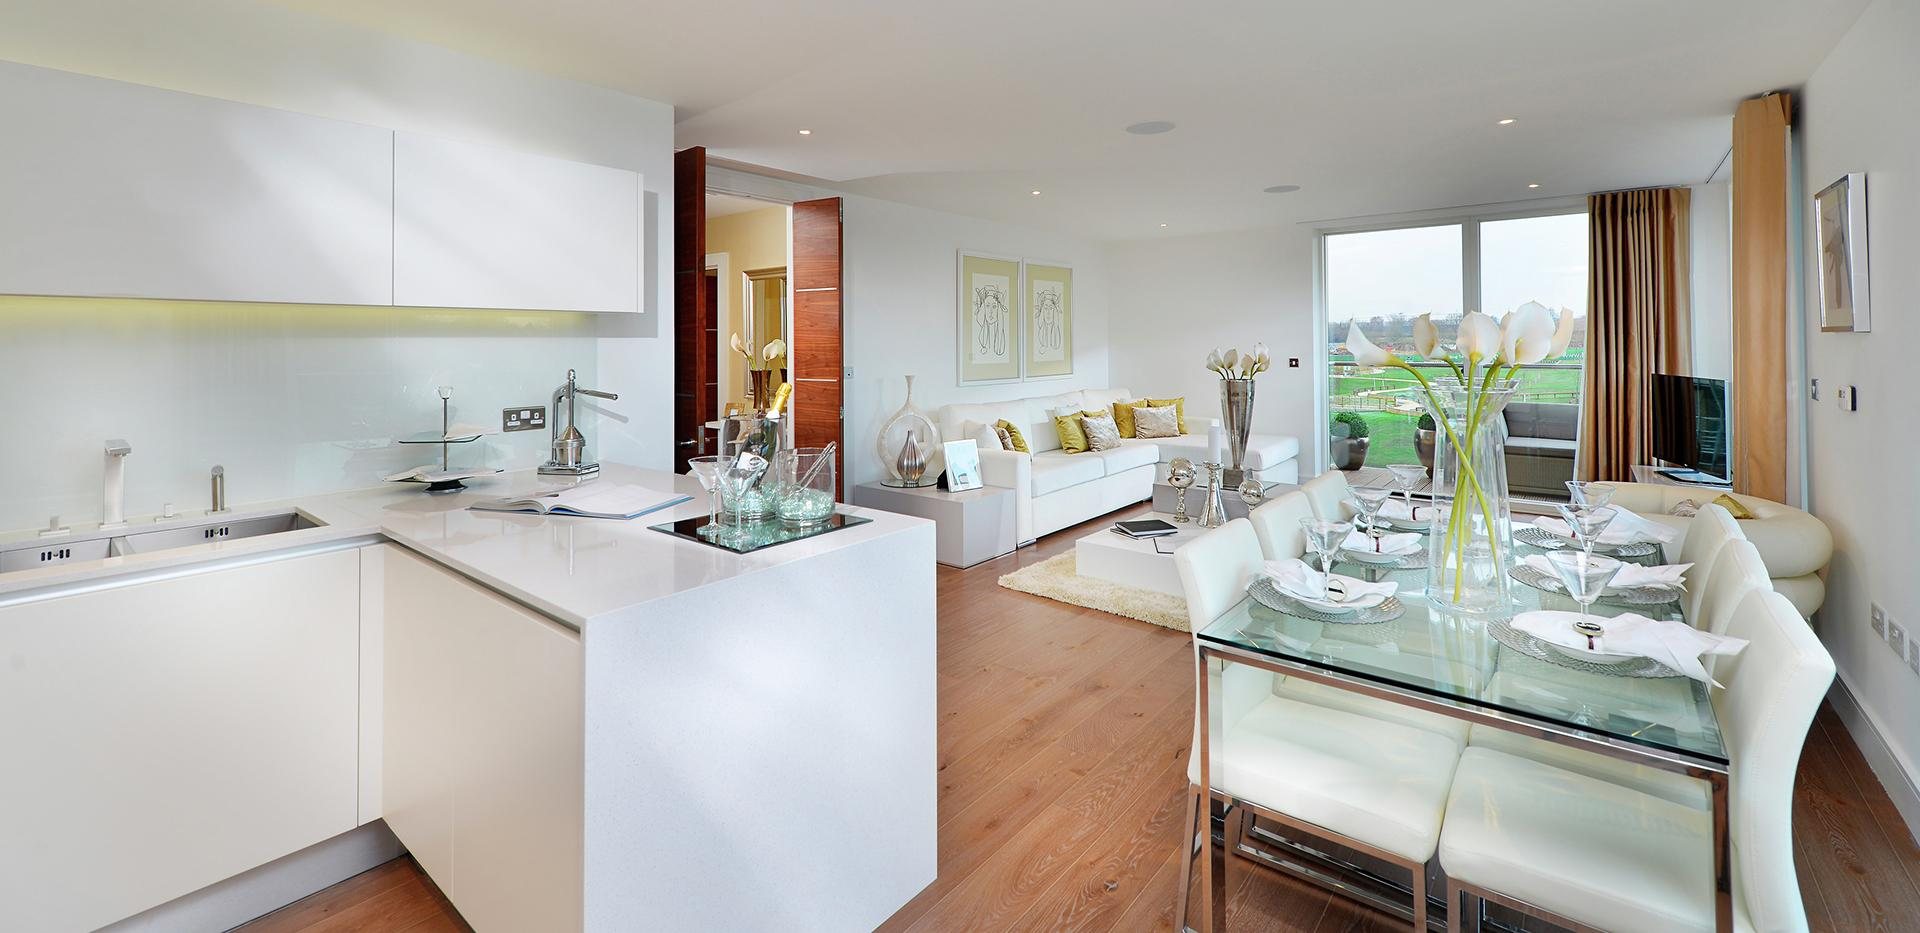 Berkeley Homes, Kidbrooke Village, Blackheath Quarter, Interiors, Kitchen, Sofa , Dining Room